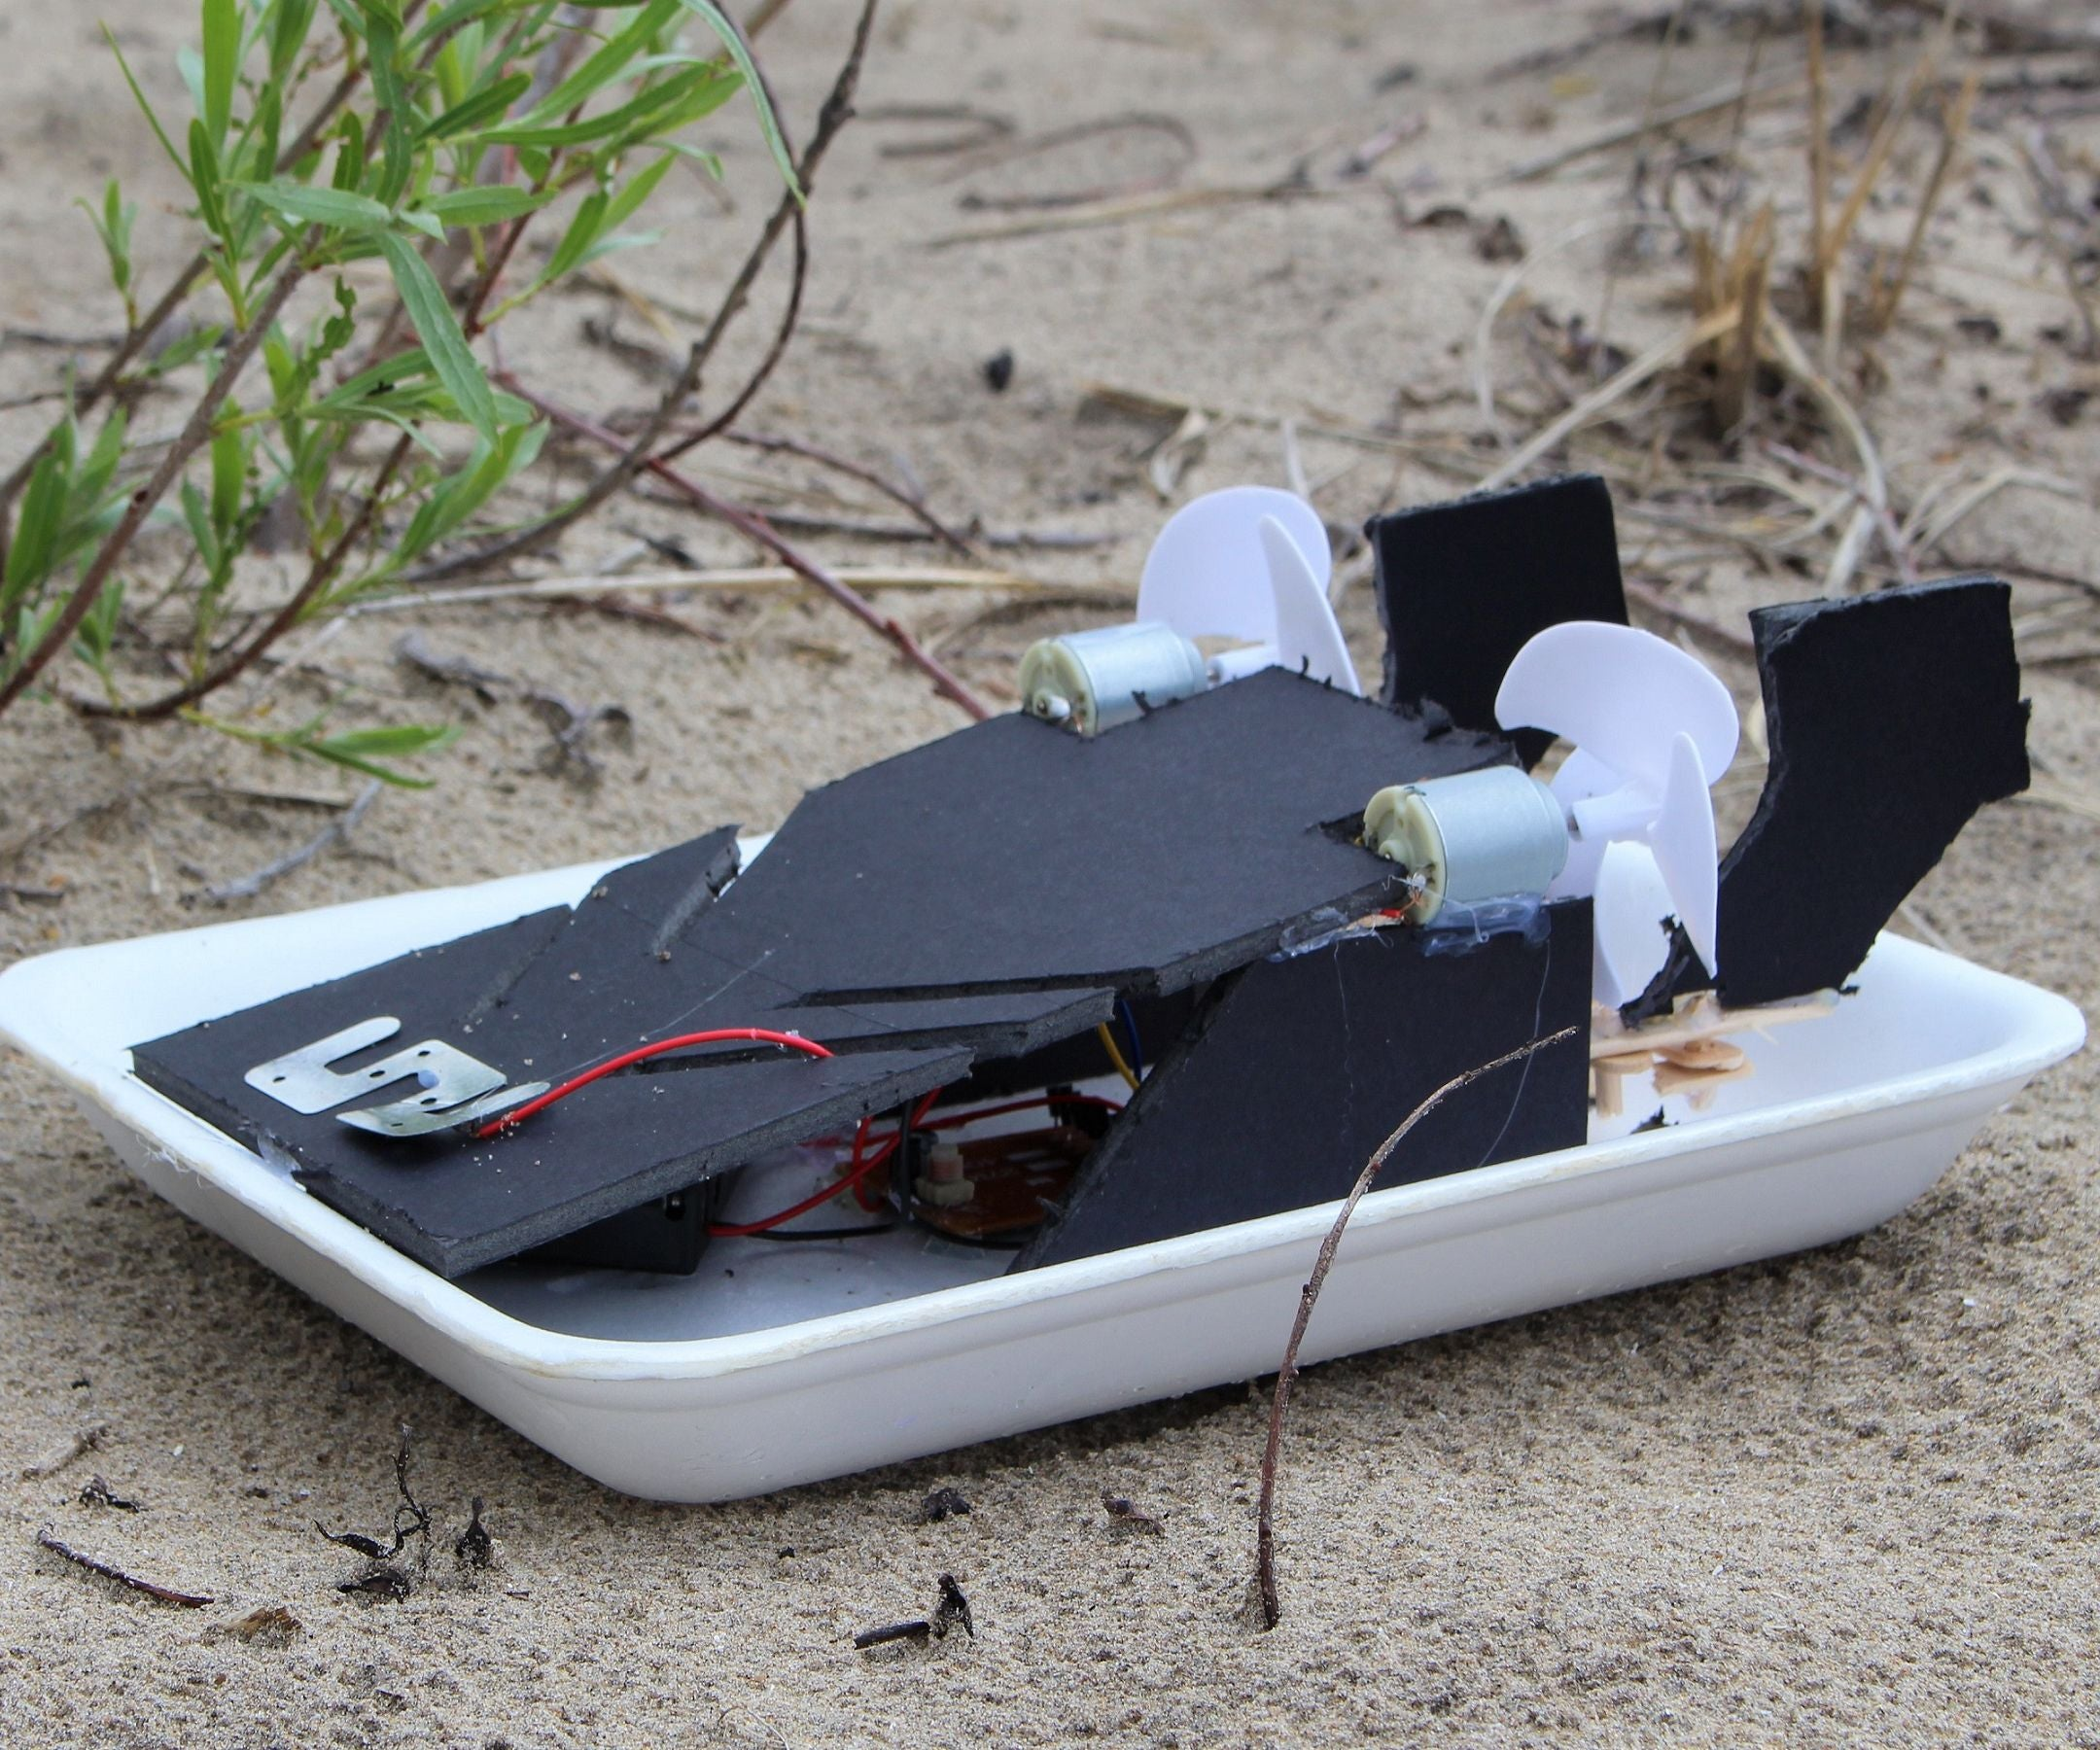 How To Make A Diy Remote Control Airboat 6 Steps With Pictures Instructables